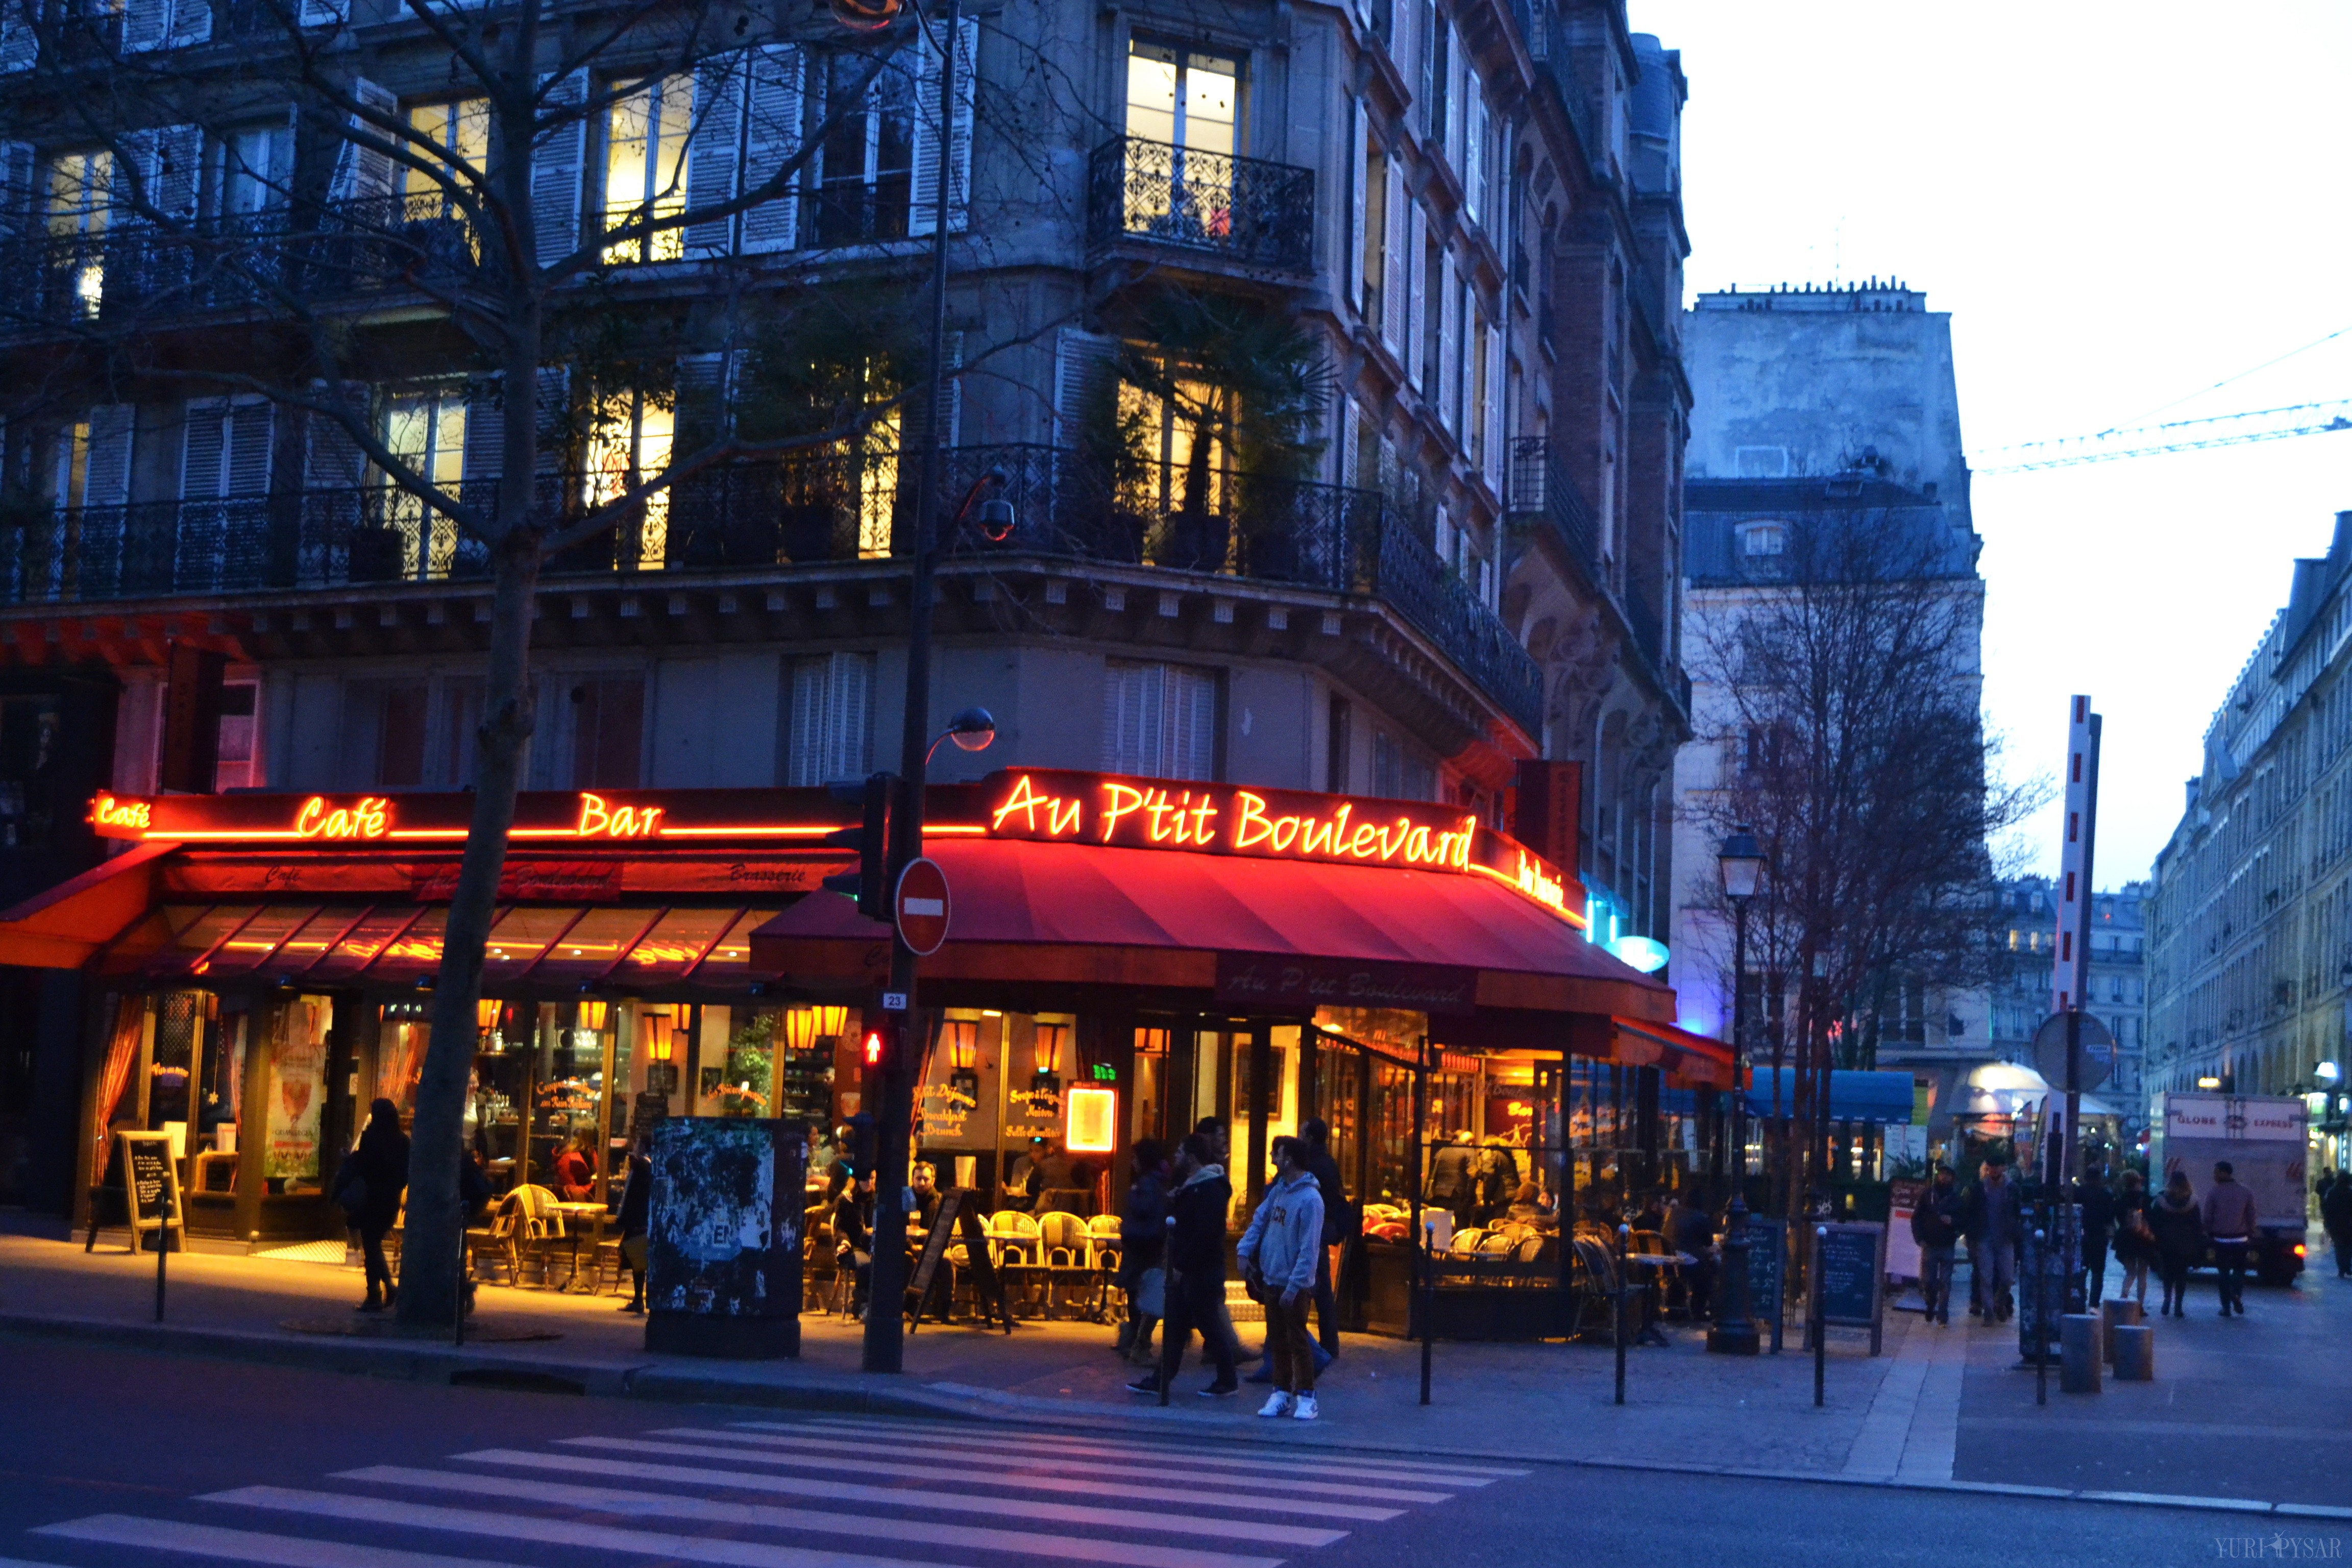 Cafe in Paris in evening lights